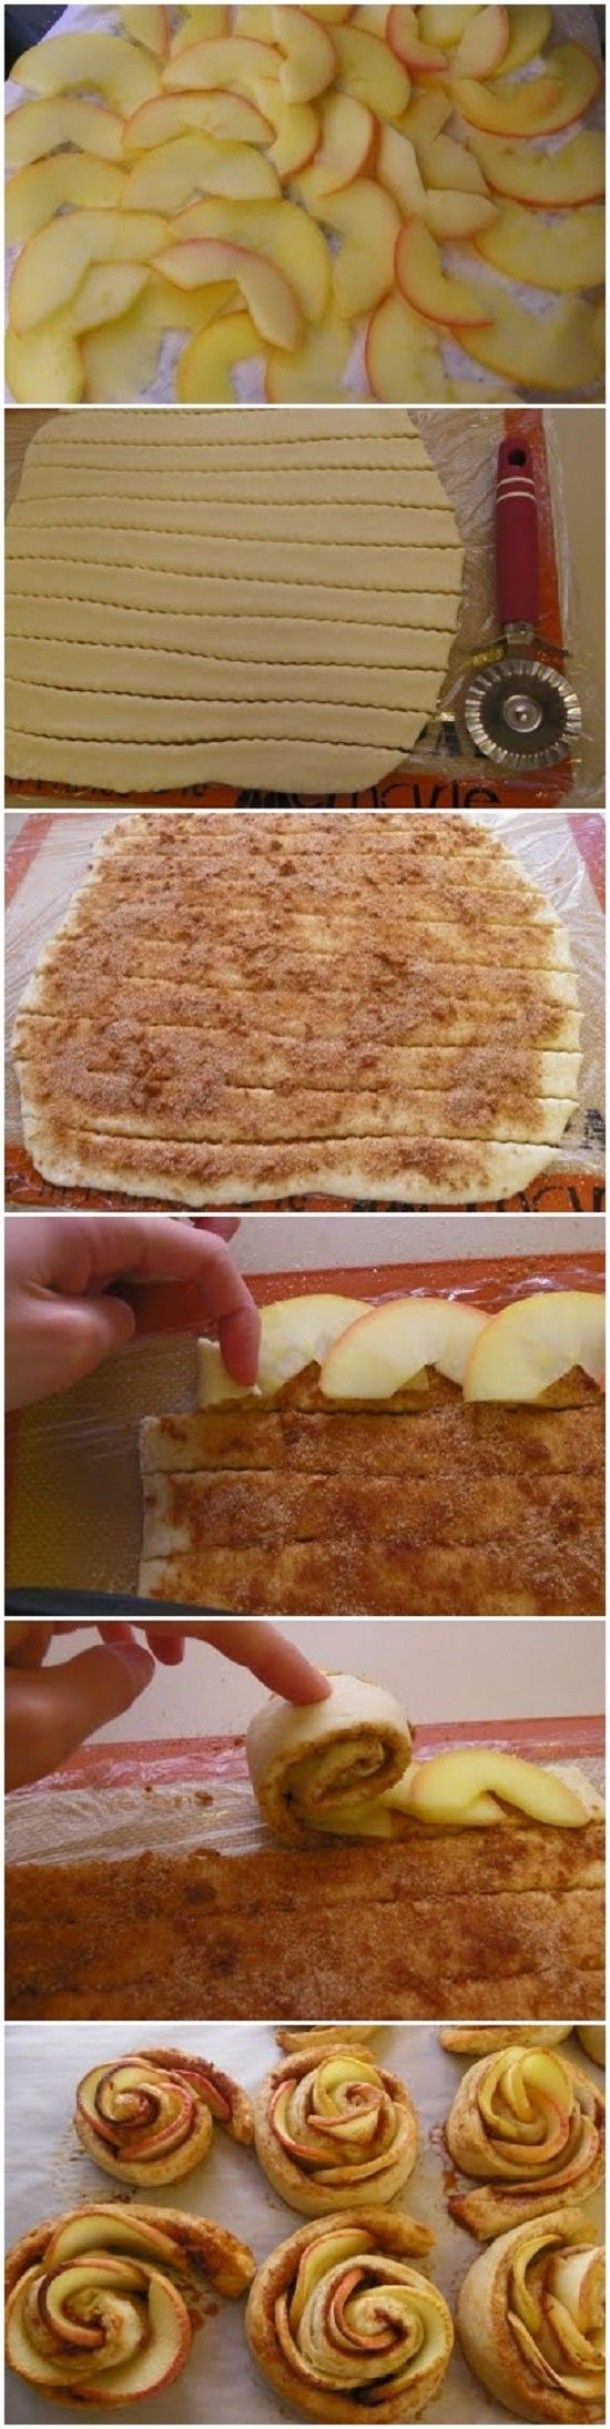 Appel rozen 1 puff pastry sheet 3 apples 5 TBSP sugar or... Door angellove1968